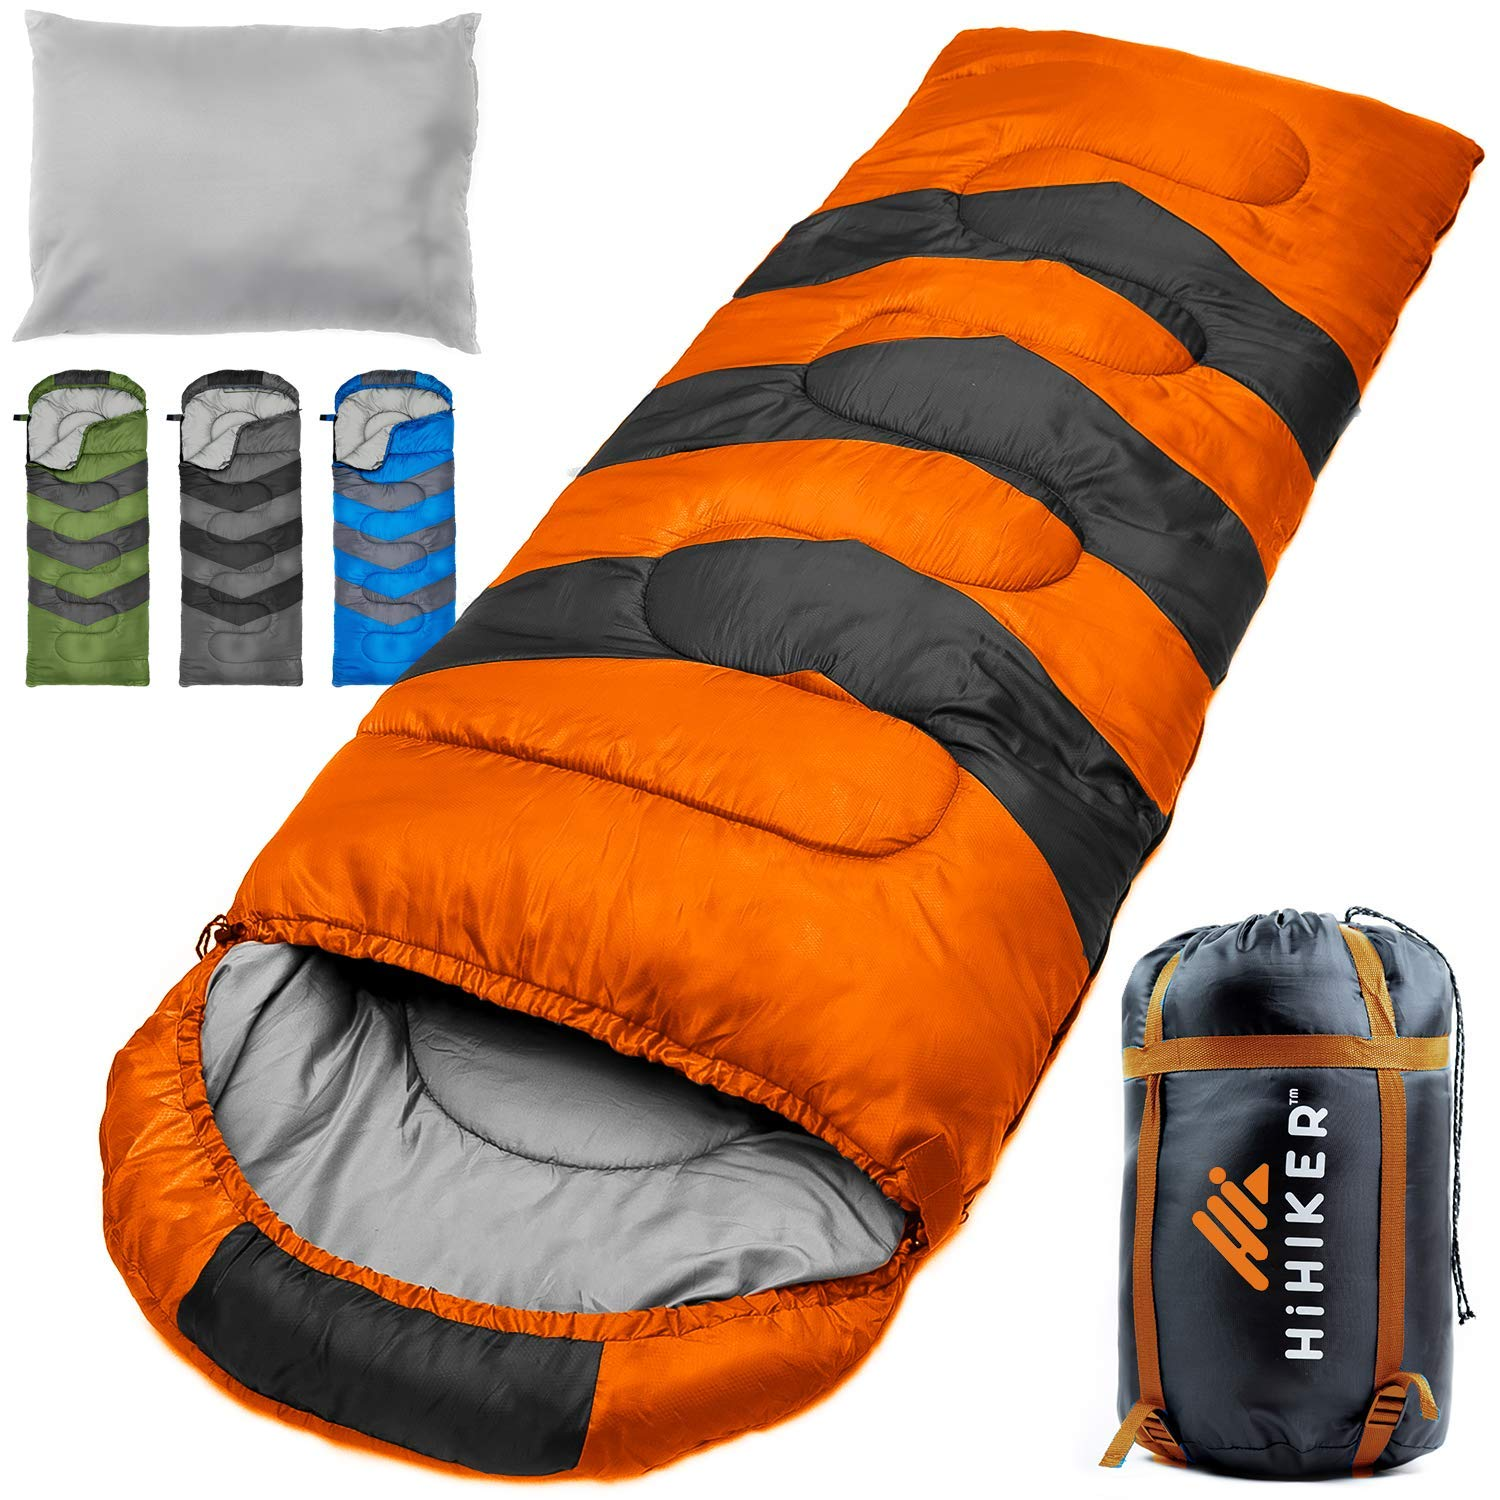 HiHiker Camping Sleeping Compact Compression